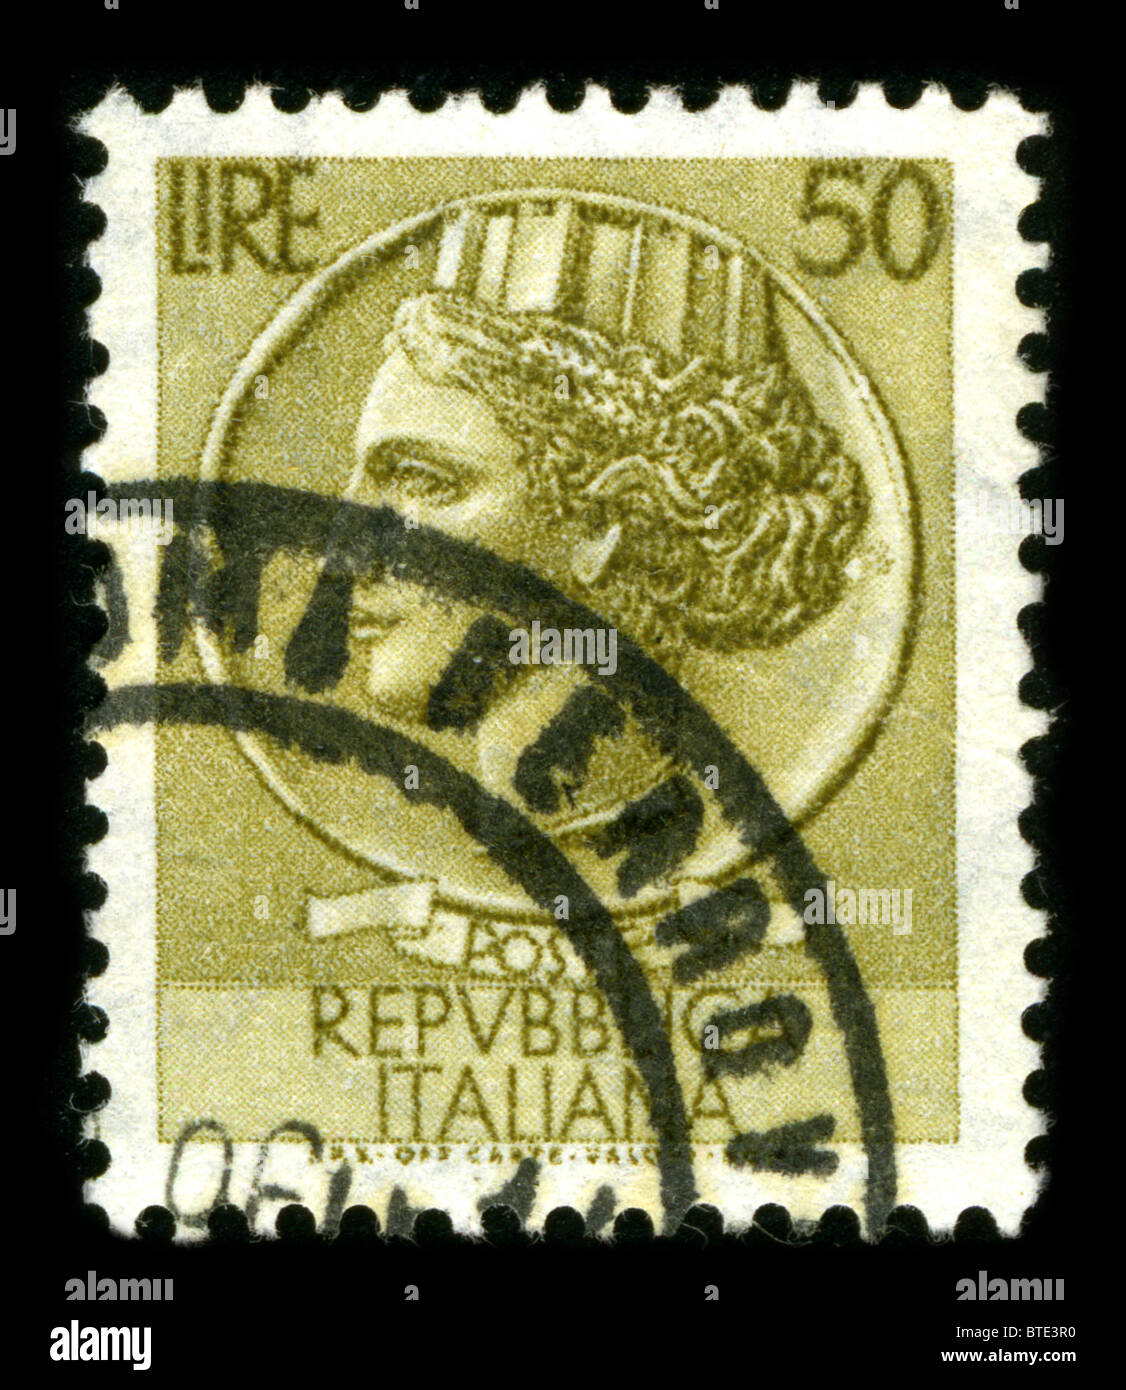 ITALY - CIRCA 1959: A stamp printed in ITALY shows image of the dedicated to the Republica Italiana circa 1959. Stock Photo